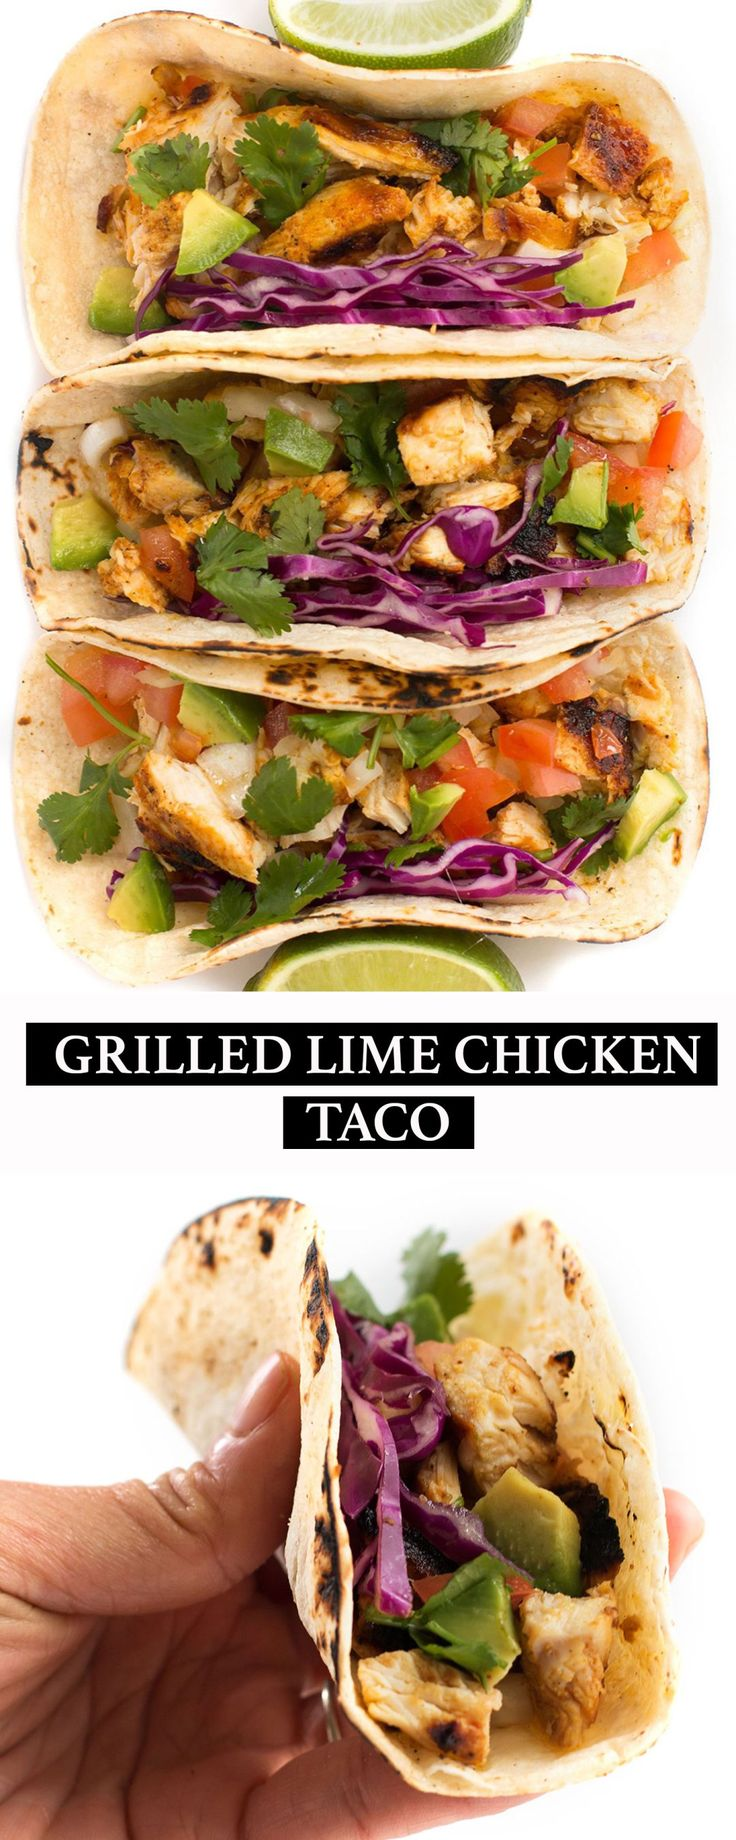 100+ Chicken Taco Recipes on Pinterest | Taco Recipe, Tacos and Slow ...